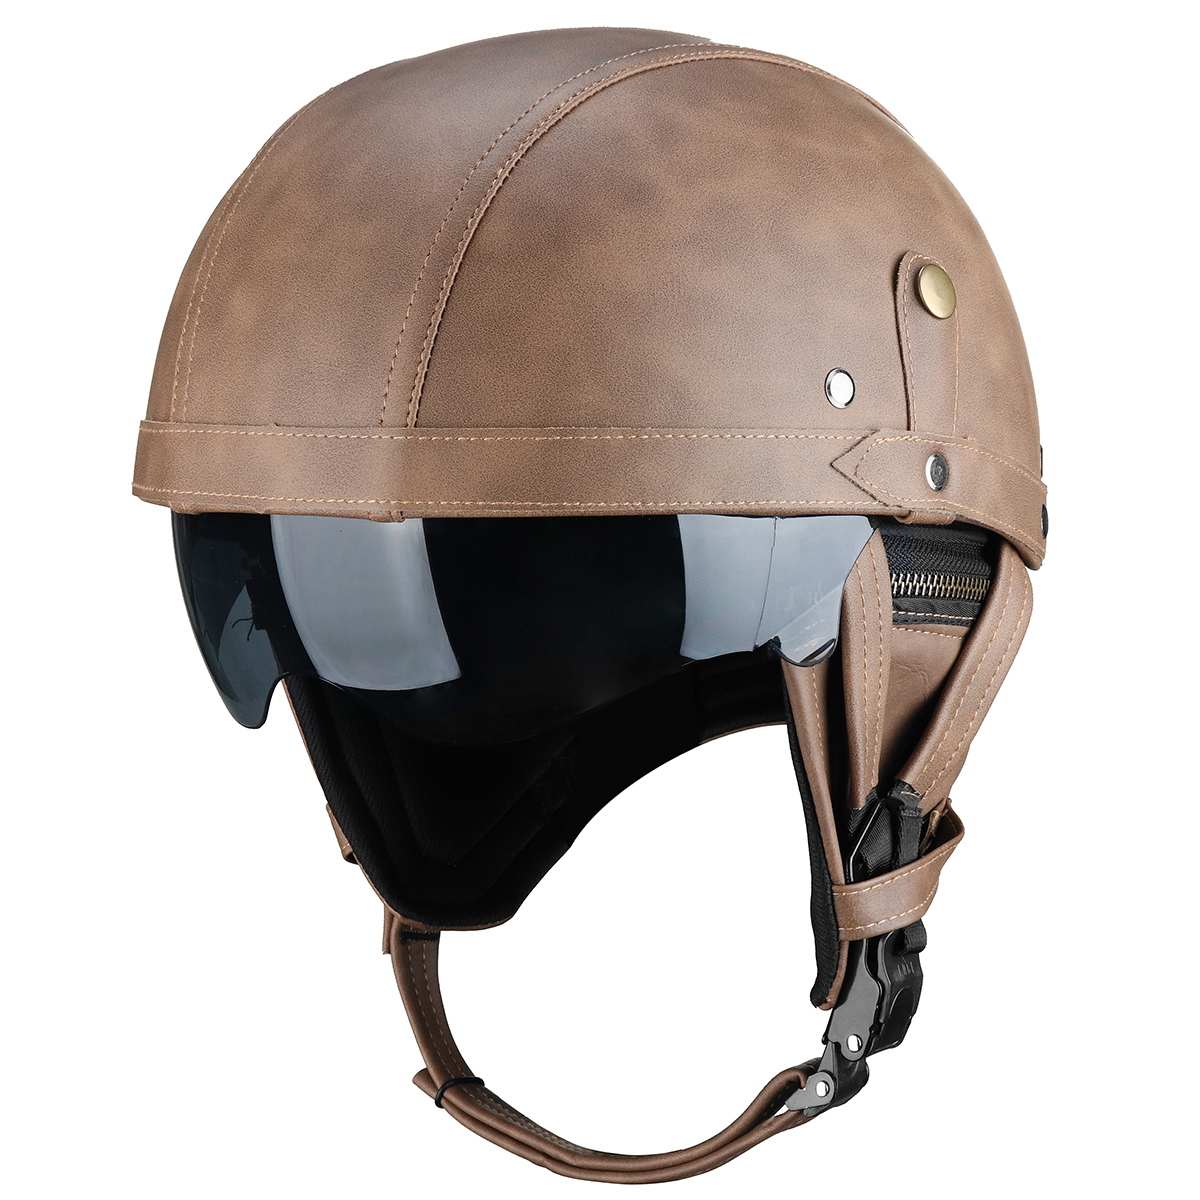 Vintage Leather Half Face Motorcycle Touring Helmet Cruiser Scooter Brown/Black